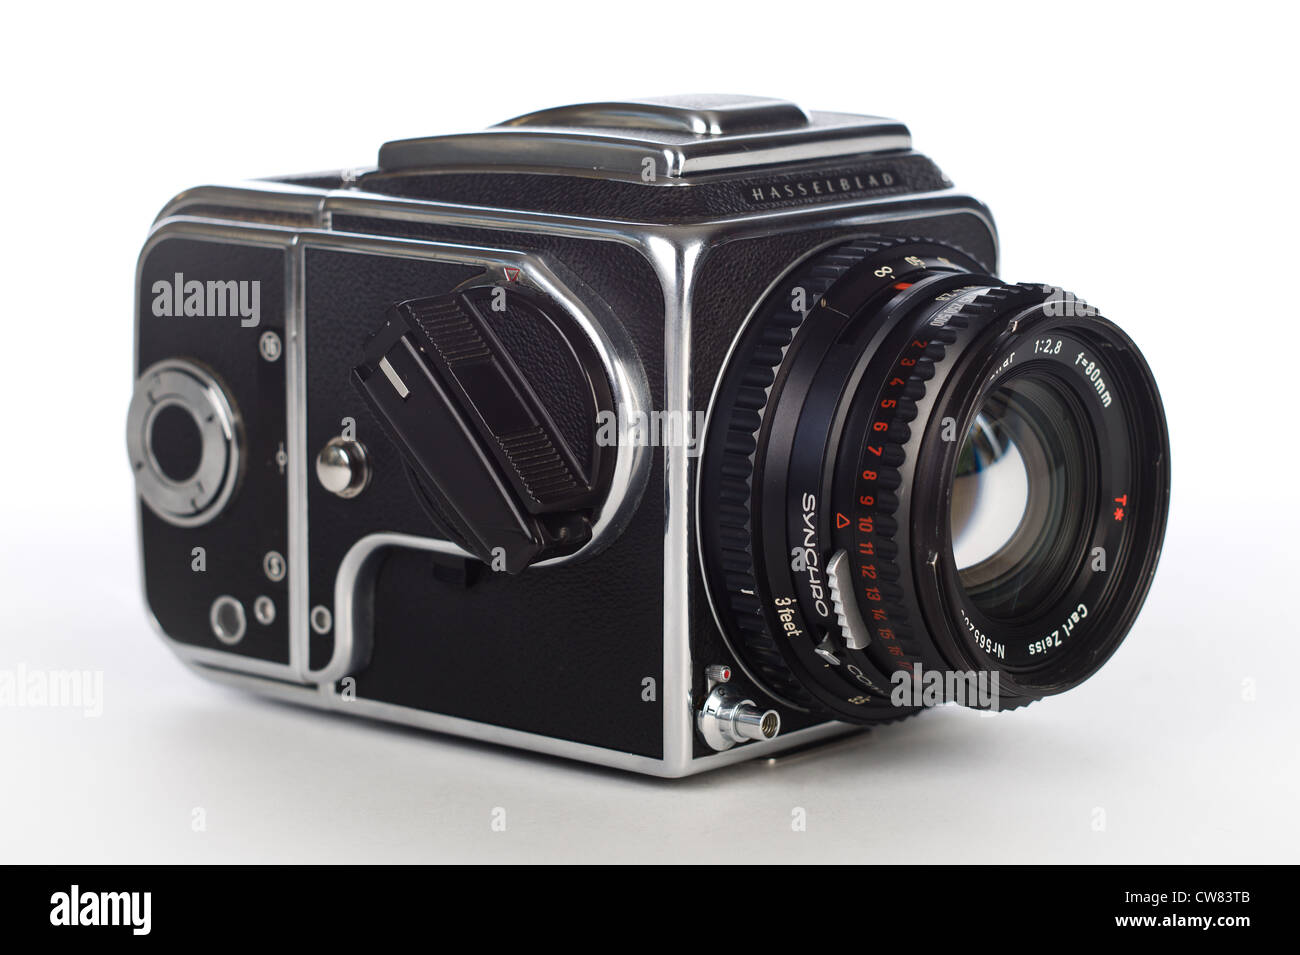 Hasselblad 500 C/M Camera with Carl Zeiss PLANAR T 80mm